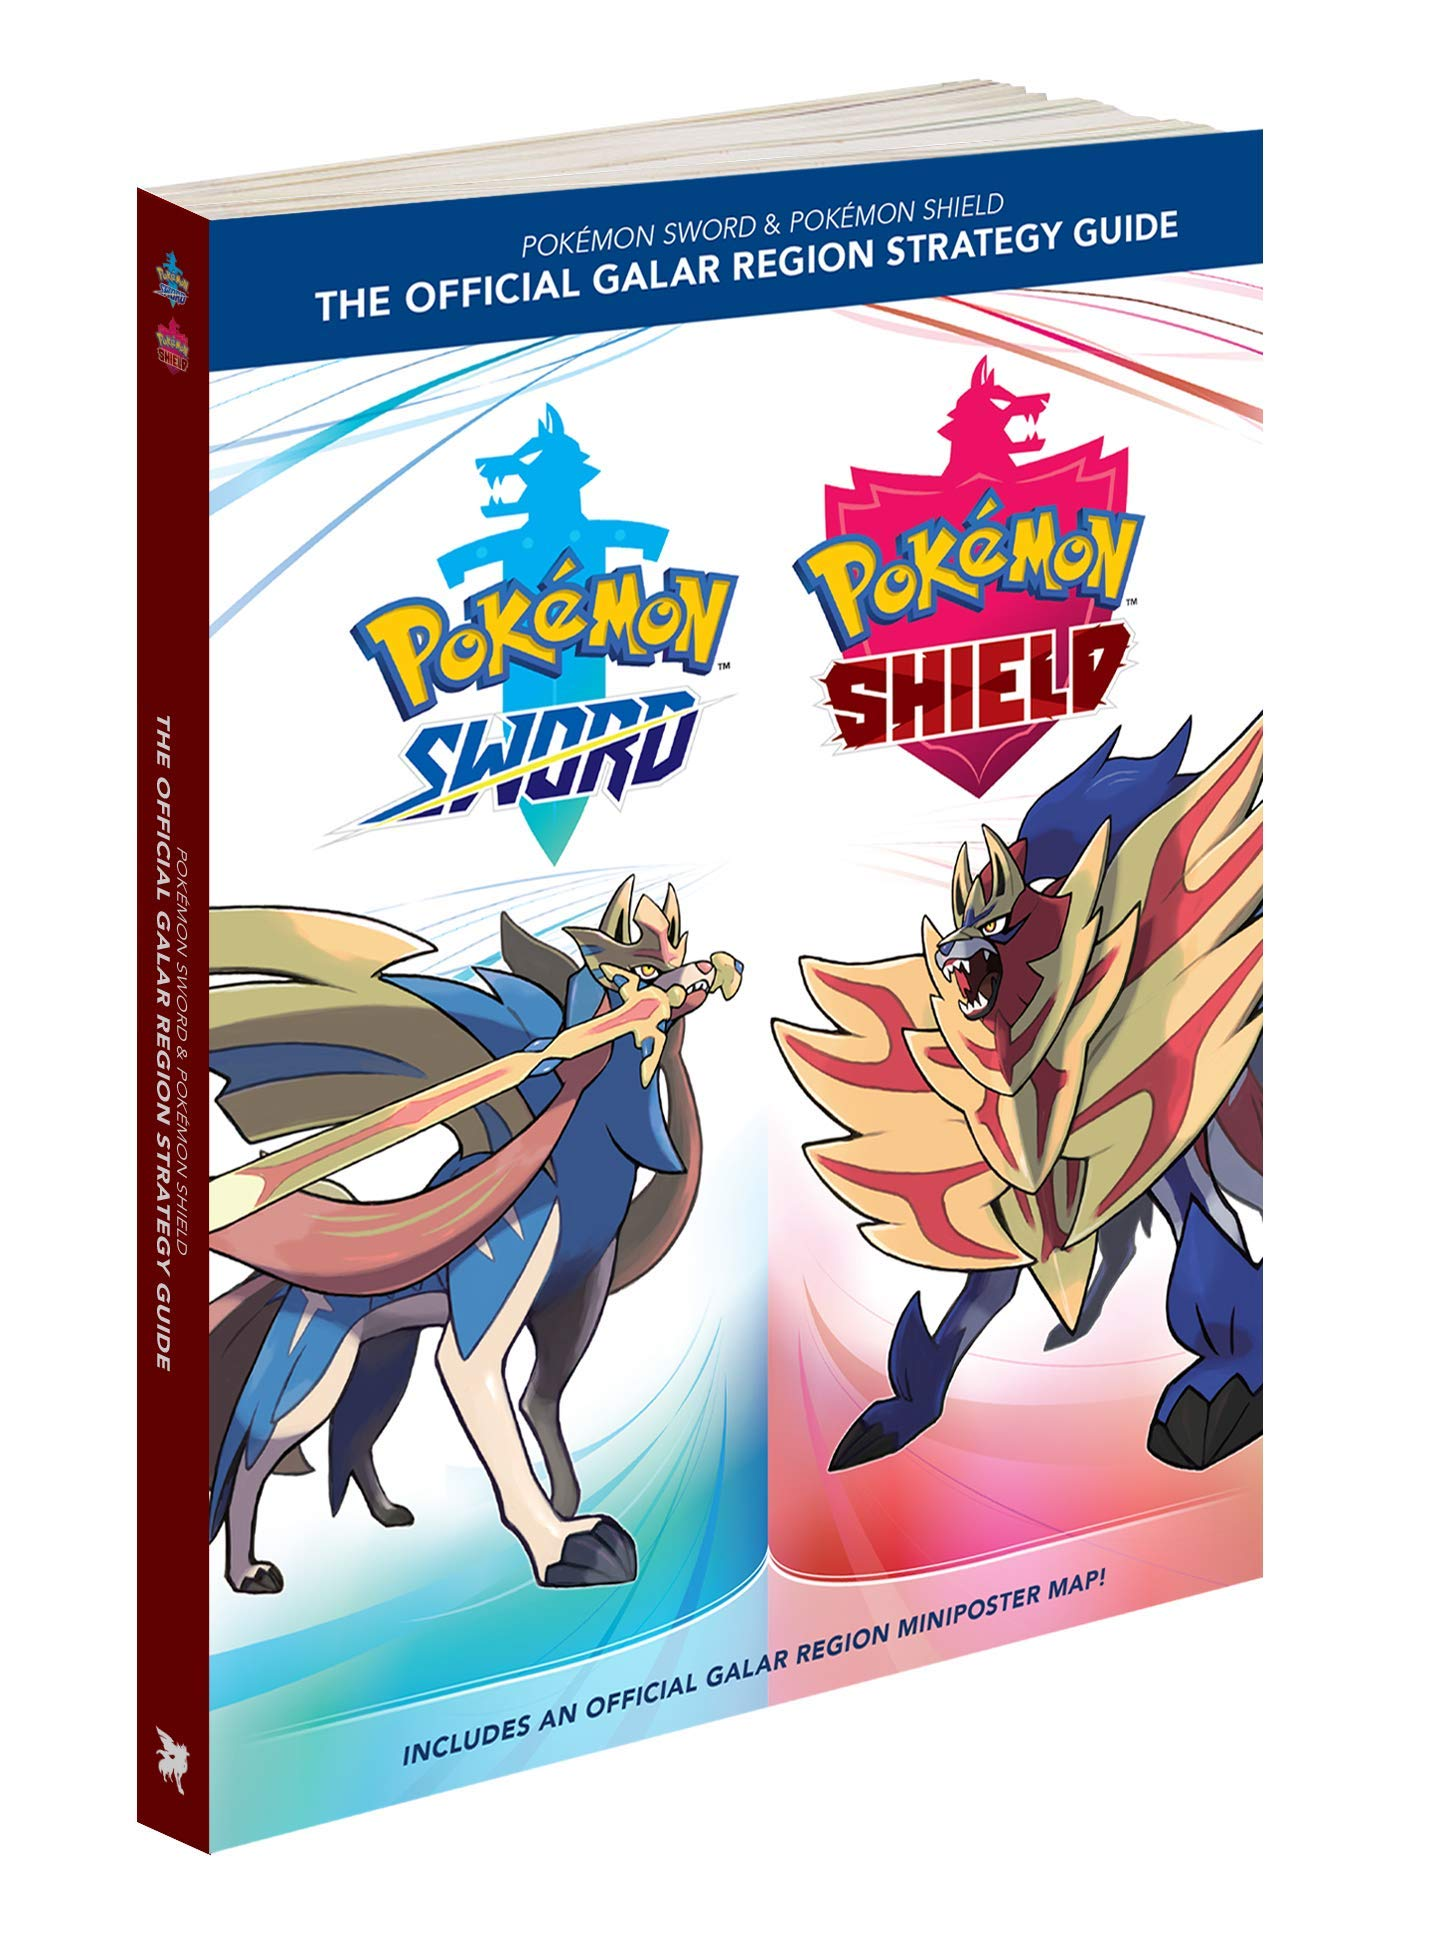 The Pokemon Sword & Pokemon Shield: Amazon.es: The Pokémon Company: Libros en idiomas extranjeros